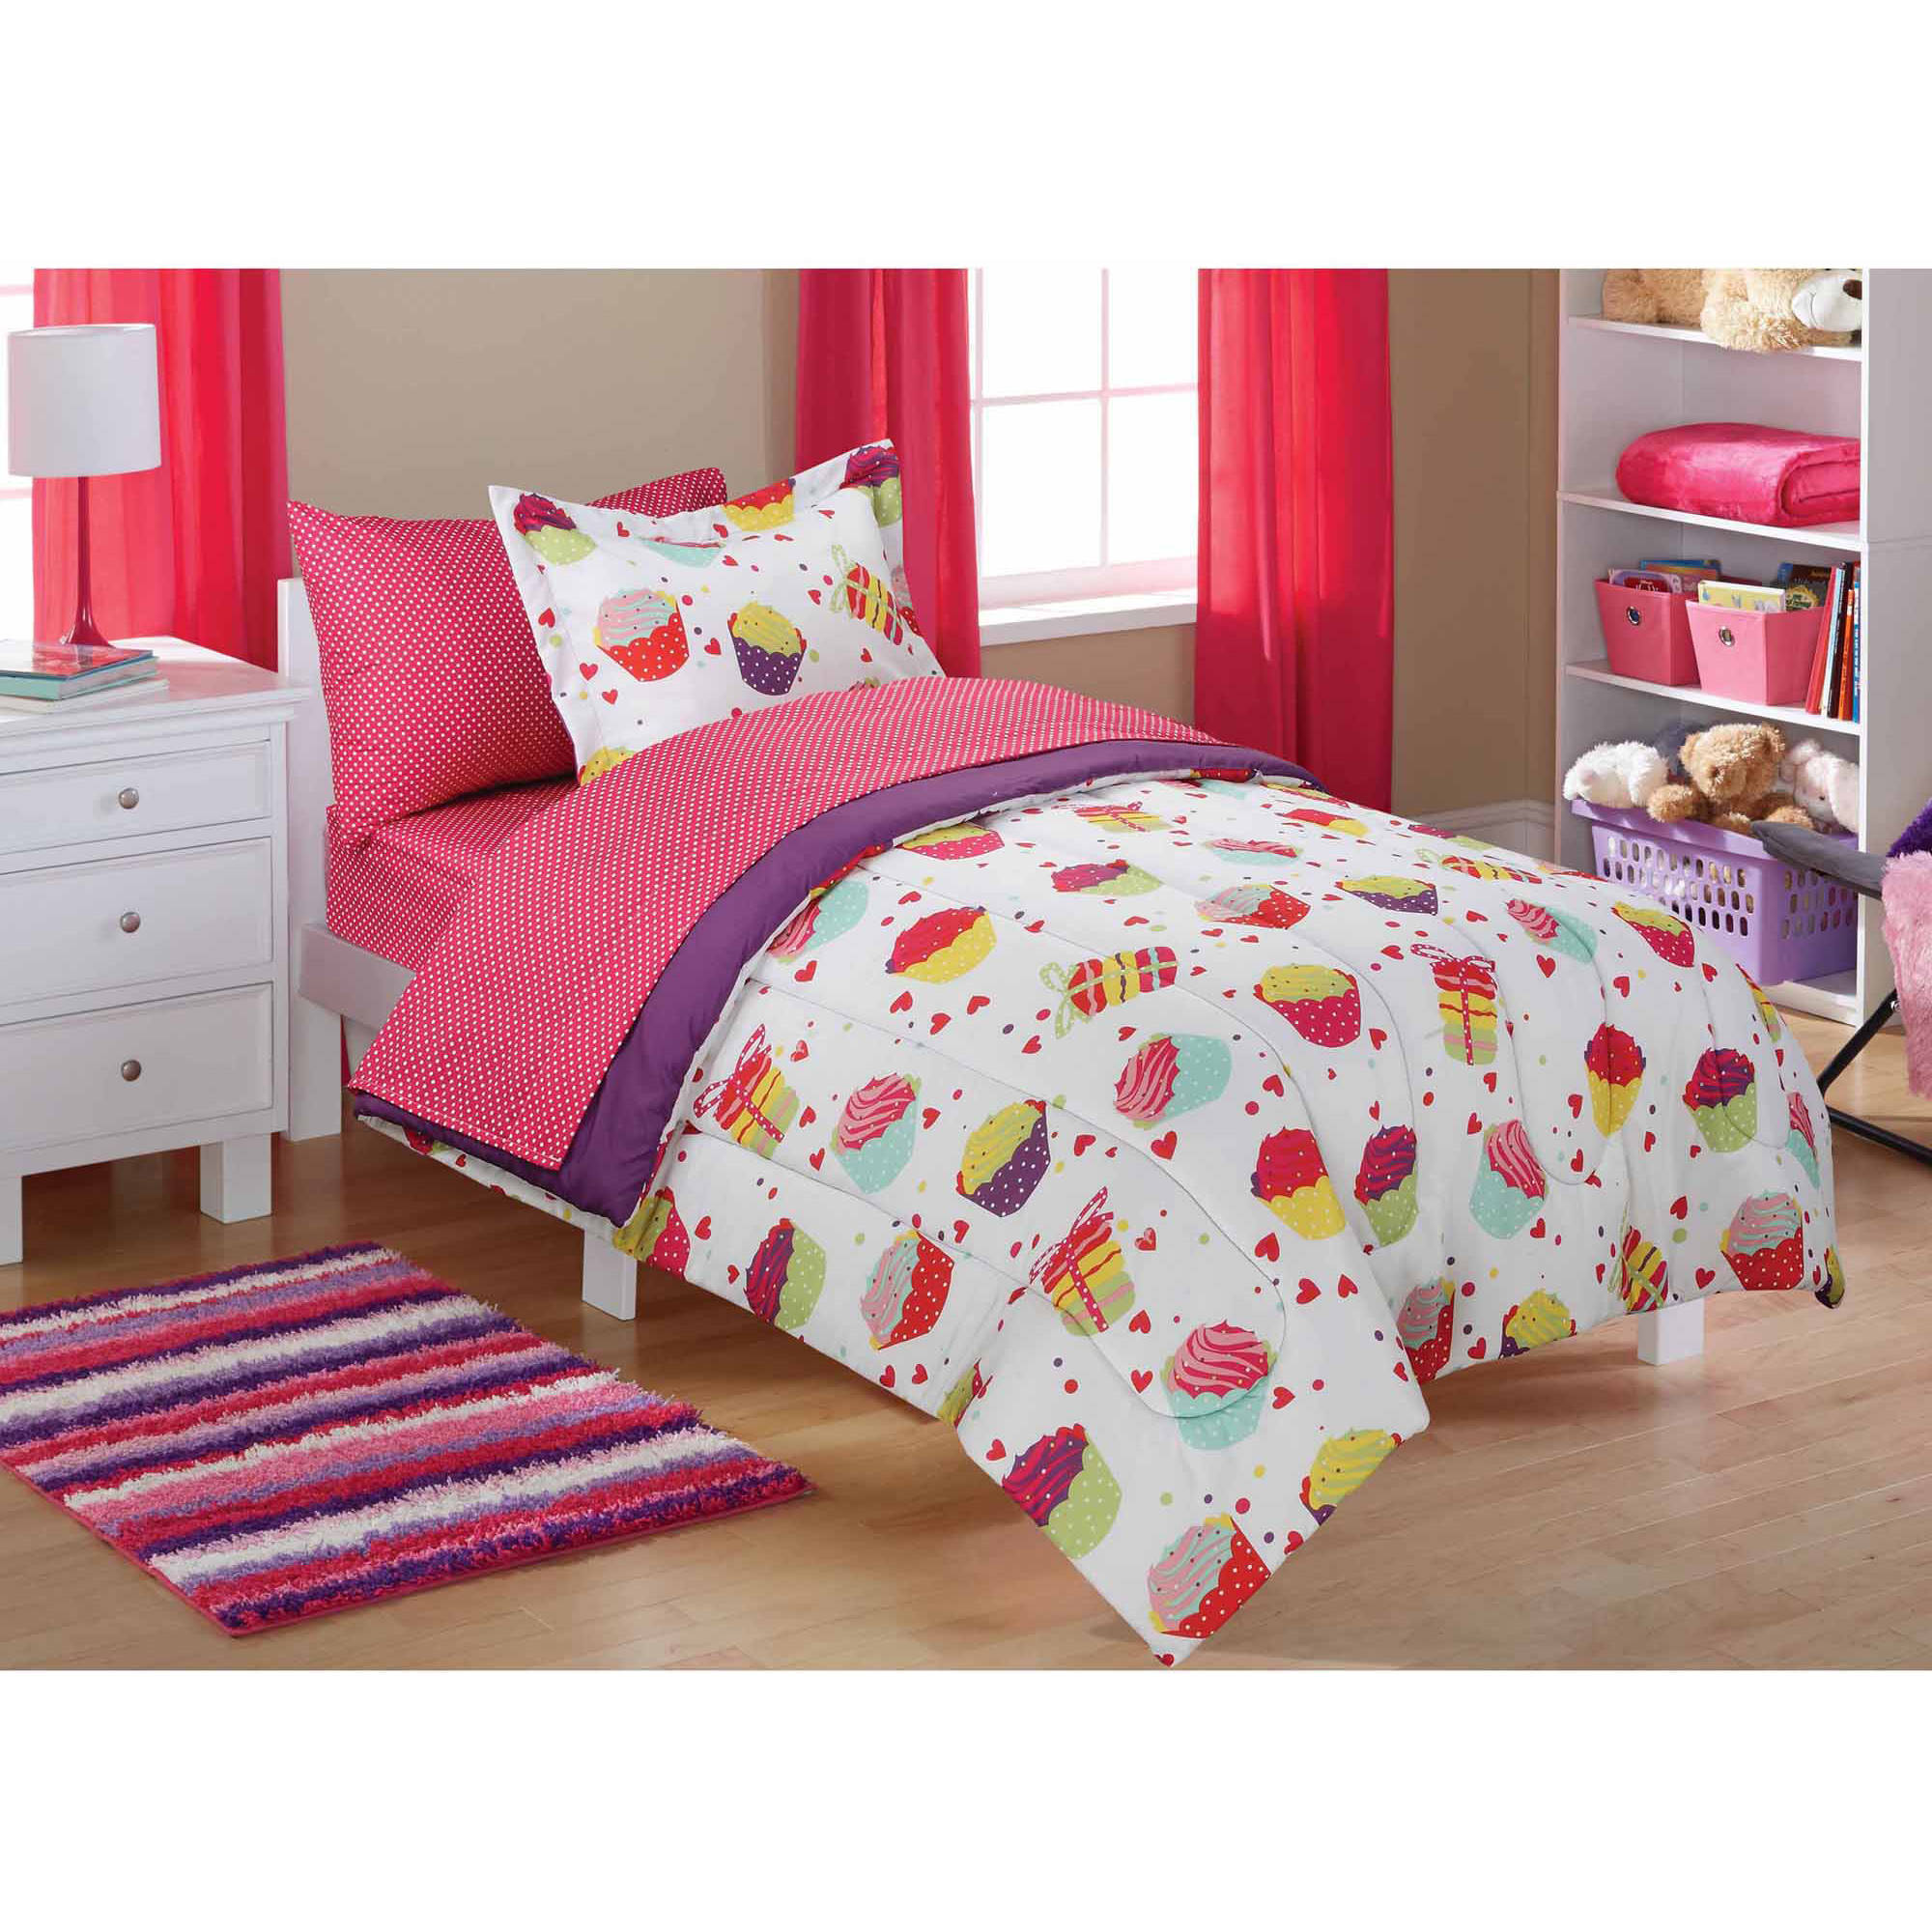 Mainstays Kids Cupcake Coordinated Bed in a Bag